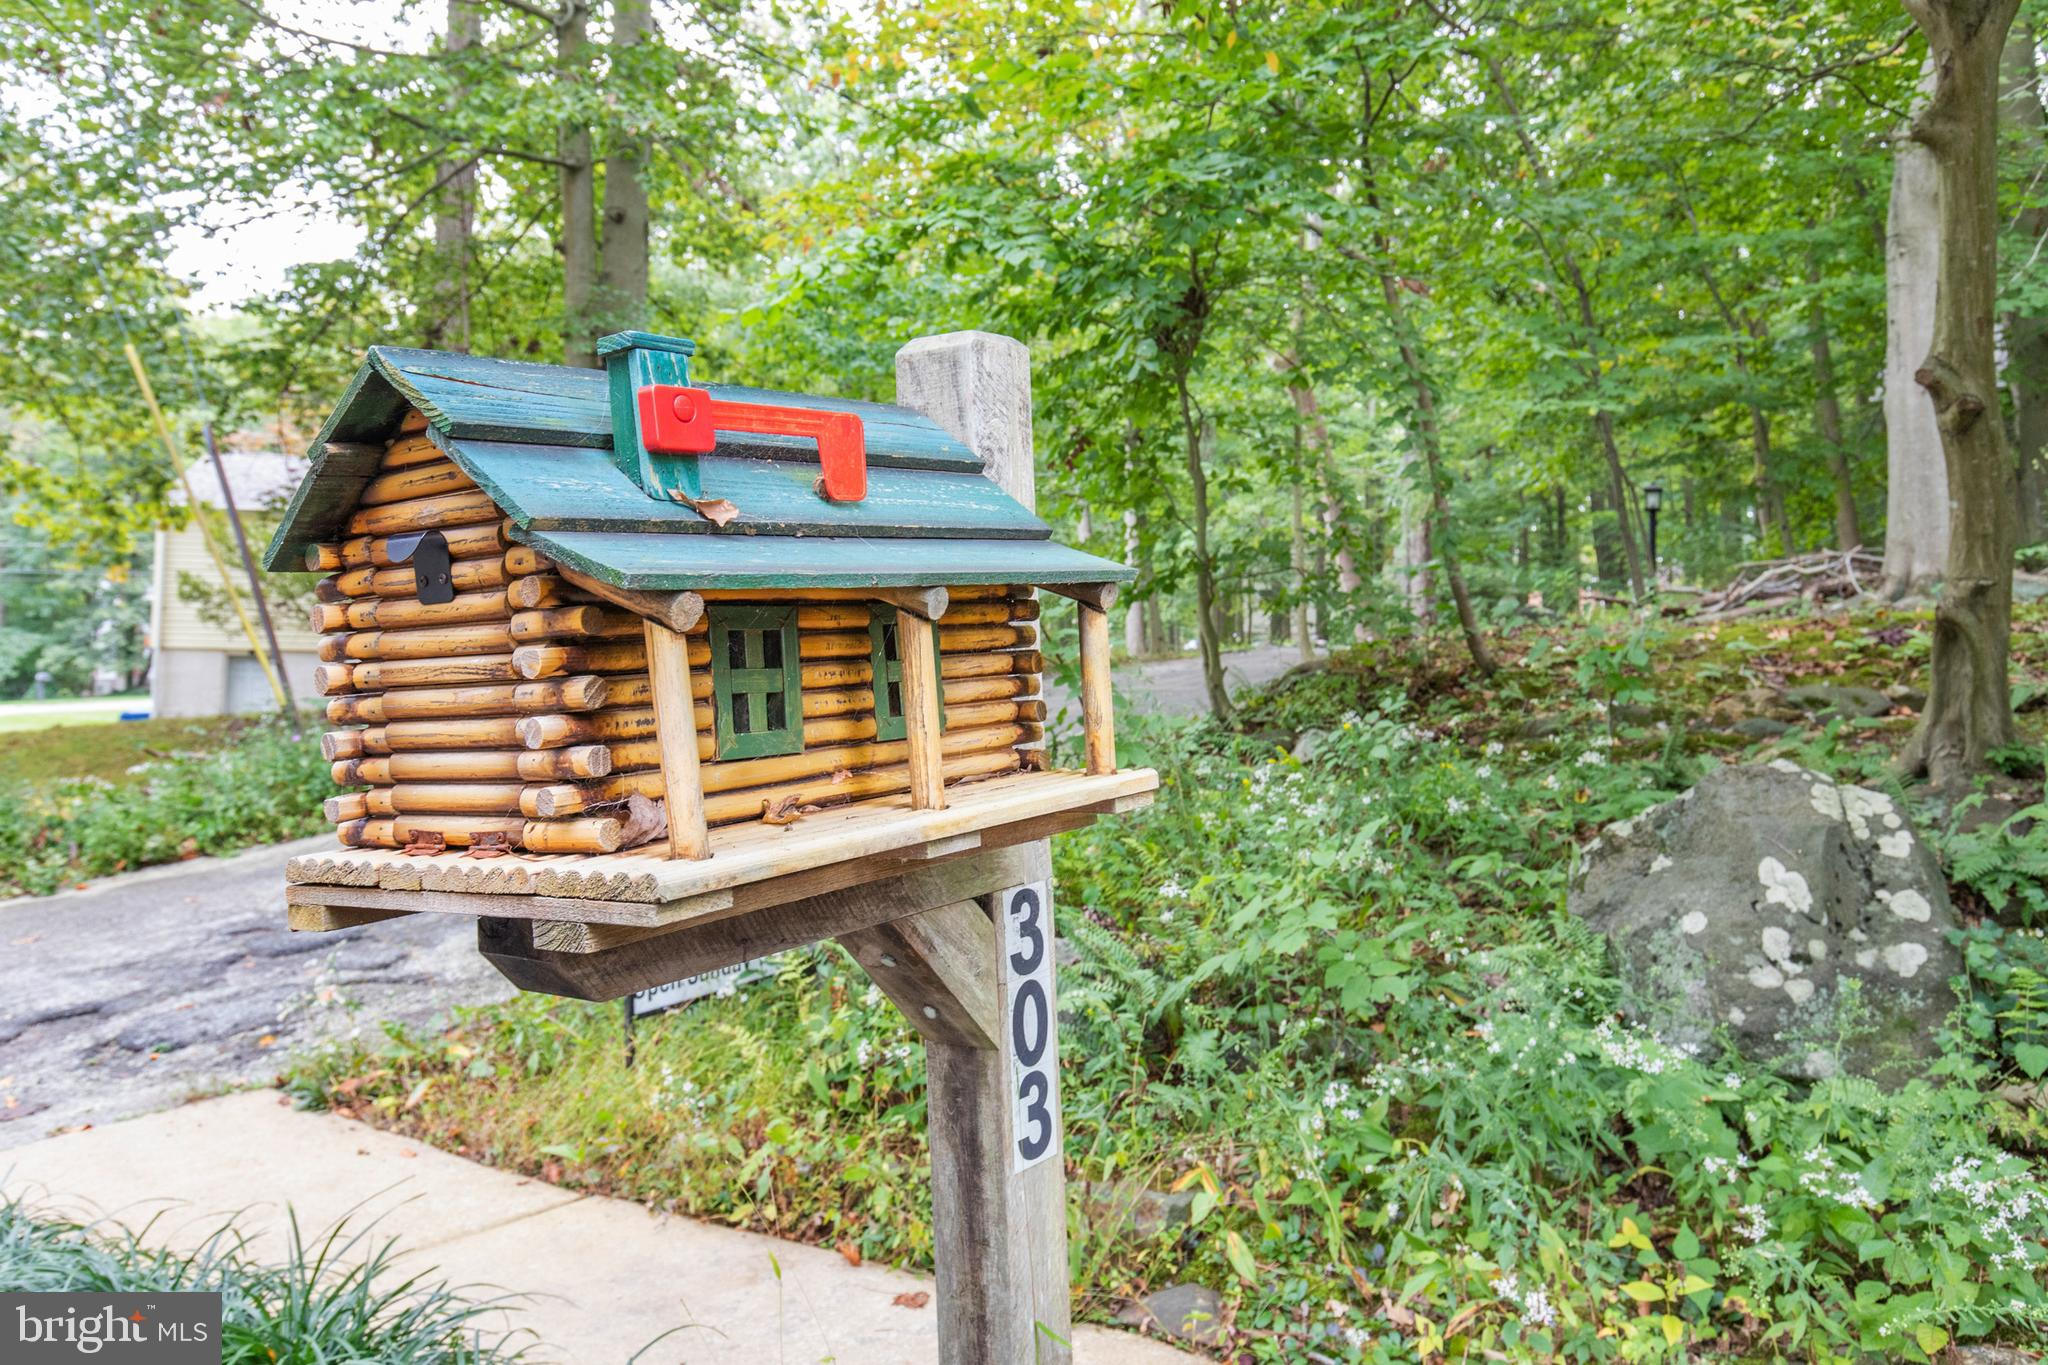 Welcome to this unique log cabin home built by Ward Cabin Company in highly sought-after community of Arbour Park.  This charming, private home is nestled in 1.13 acres of wooded property.  It's like living in a serene mountain resort with all the conveniences of Newark nearby.   As you enter the home you will see the open concept living room, dining room, family room and kitchen overlooking the lovely wooded terrain. The kitchen features new black appliances and open to the family room and dining room. Just down the hall are three bedrooms with ample closet space and hardwood floors throughout.   Also on this level are two full bathrooms as well as another room which can be used as a bedroom or home office next to the family room.  The gorgeous stone wood-burning fireplace offers warmth to the living room and the second fireplace is in the family room. Laundry room is also on the first floor. You then go upstairs to the full spacious attic offering additional living space and storage.  The partially finished basement on the lower level is where you'll find additional living space and the third fireplace - perfect for entertaining and recreation and access to the two-car garage.  HVAC has 3 zones.  Just out the door from the kitchen are the patio and wood shed with access to the inside wood box.  This property encompasses 3 lots in total and offers a community pool in the neighborhood. Put this log home on your tour today and celebrate the beauty of all seasons!  This property is conveniently located within walking distance of Rittenhouse Park and in close proximity to the University of Delaware, great restaurants, I-95, shopping and 17 miles of trails through all the New Castle County Parks.  This amazing property has so much to offer and being sold As-Is!